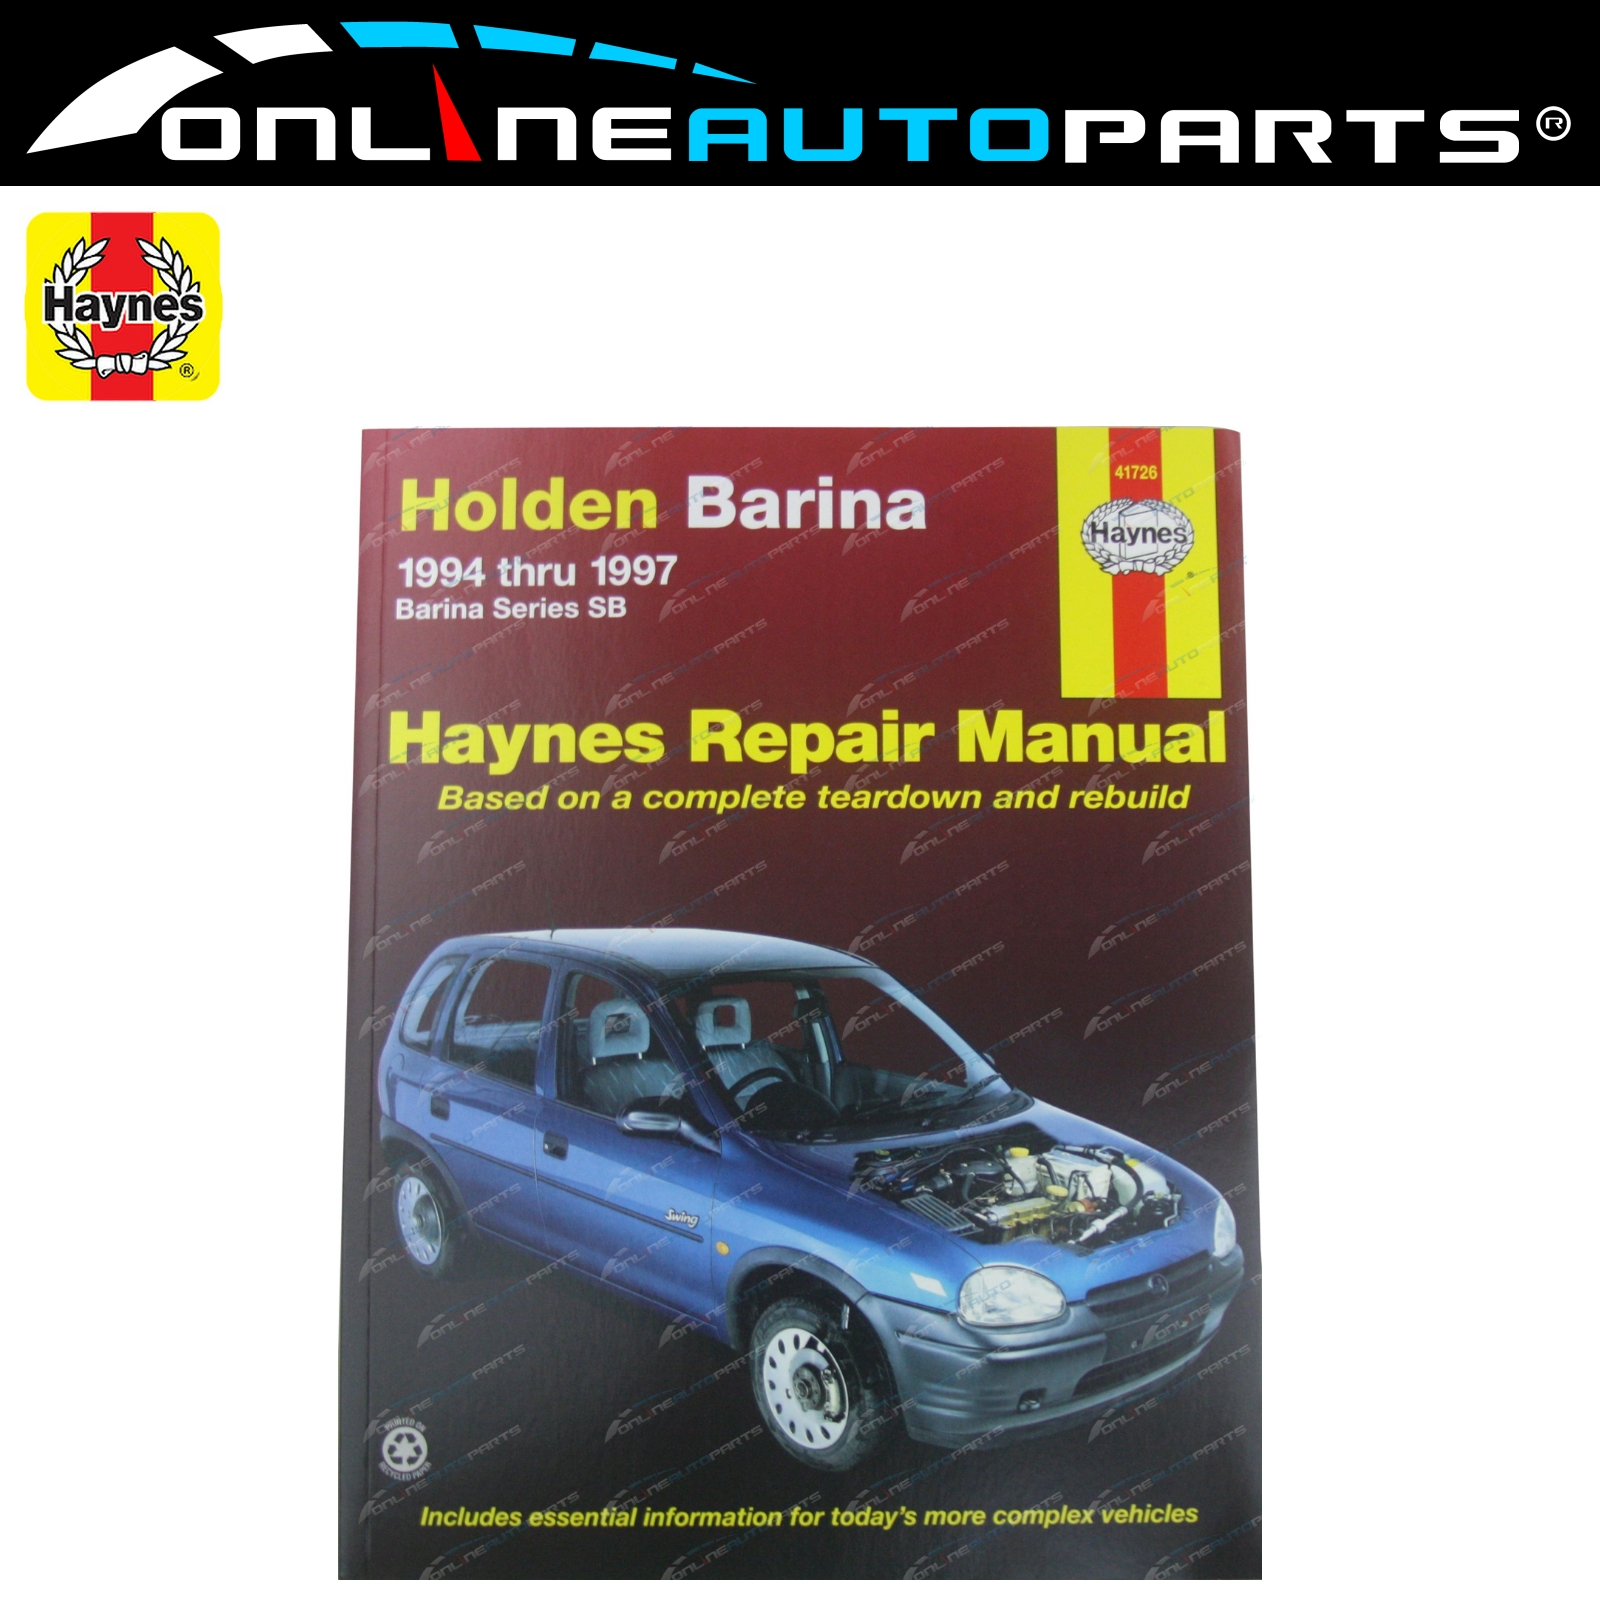 Haynes Car Repair Manual Book Holden Barina SB C12NZ C14NZ X16XE C16XE C14SE